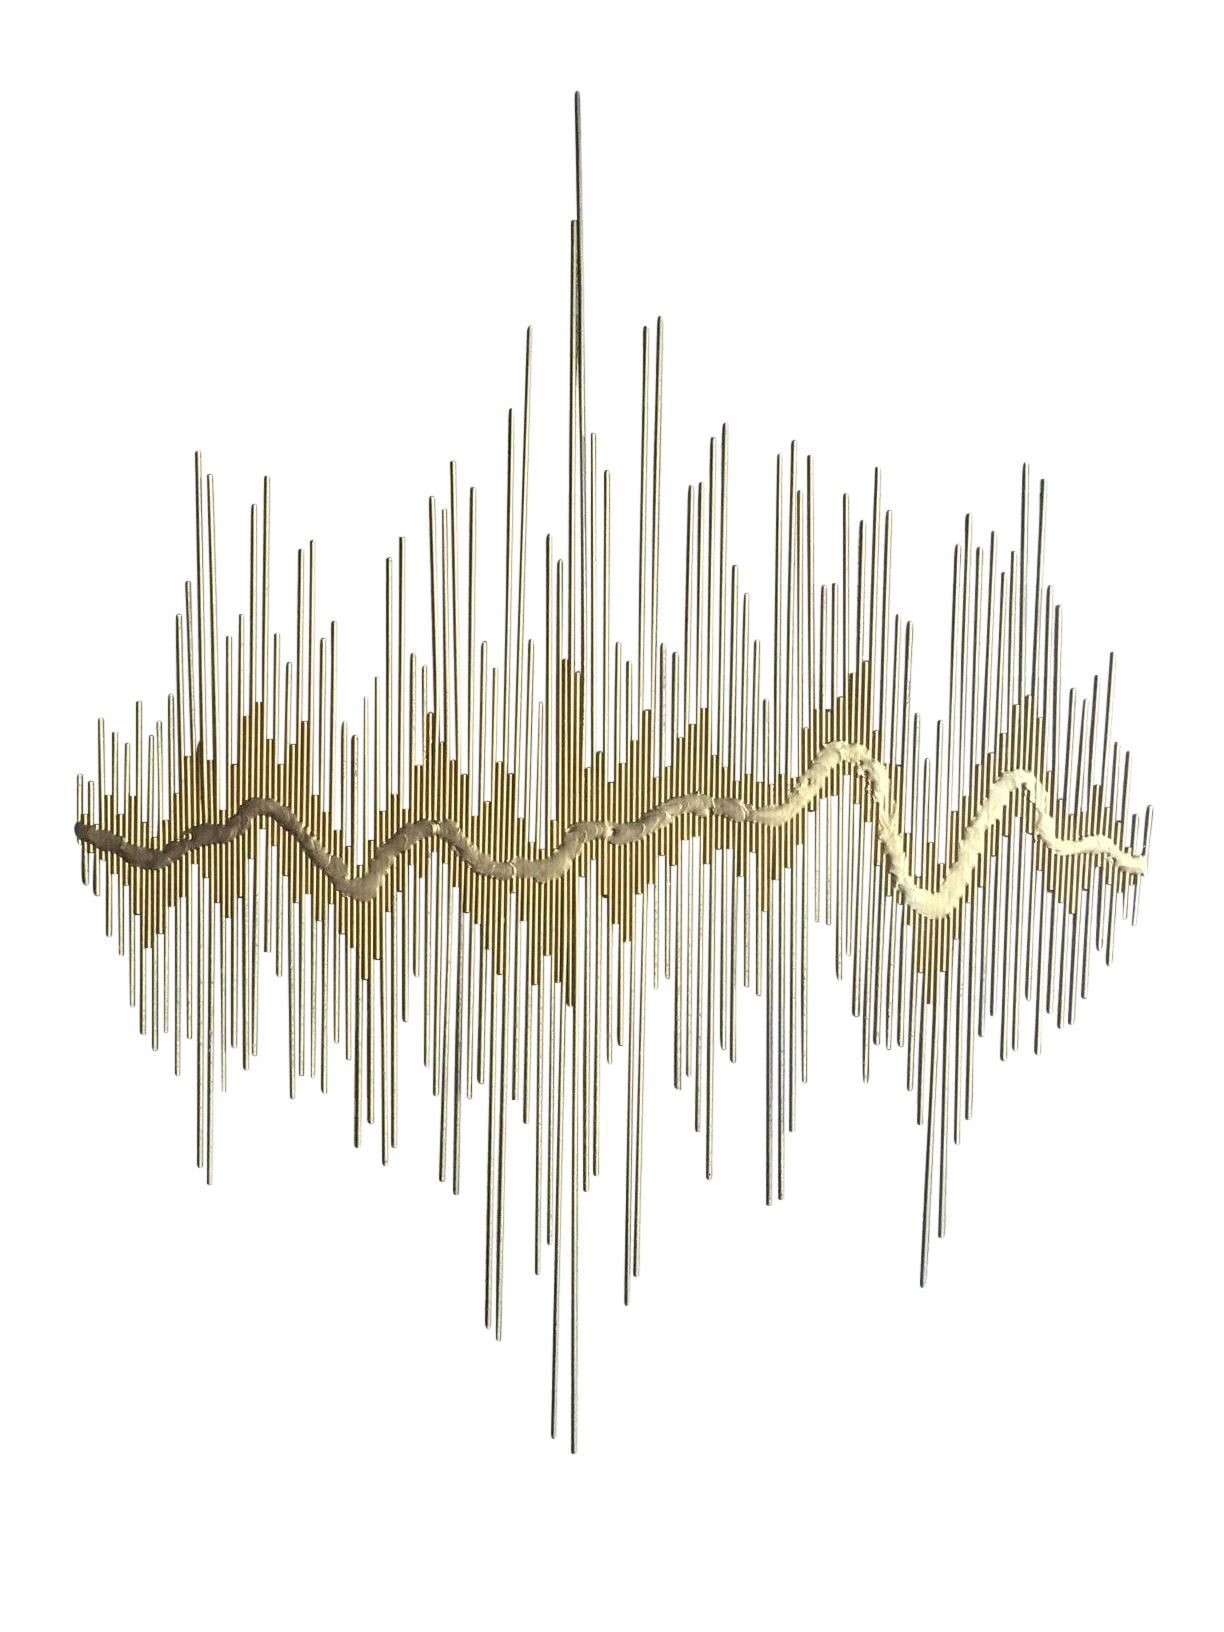 Quot Sound Waves Quot Metal Wall Sculpture On Chairish Com A1 In